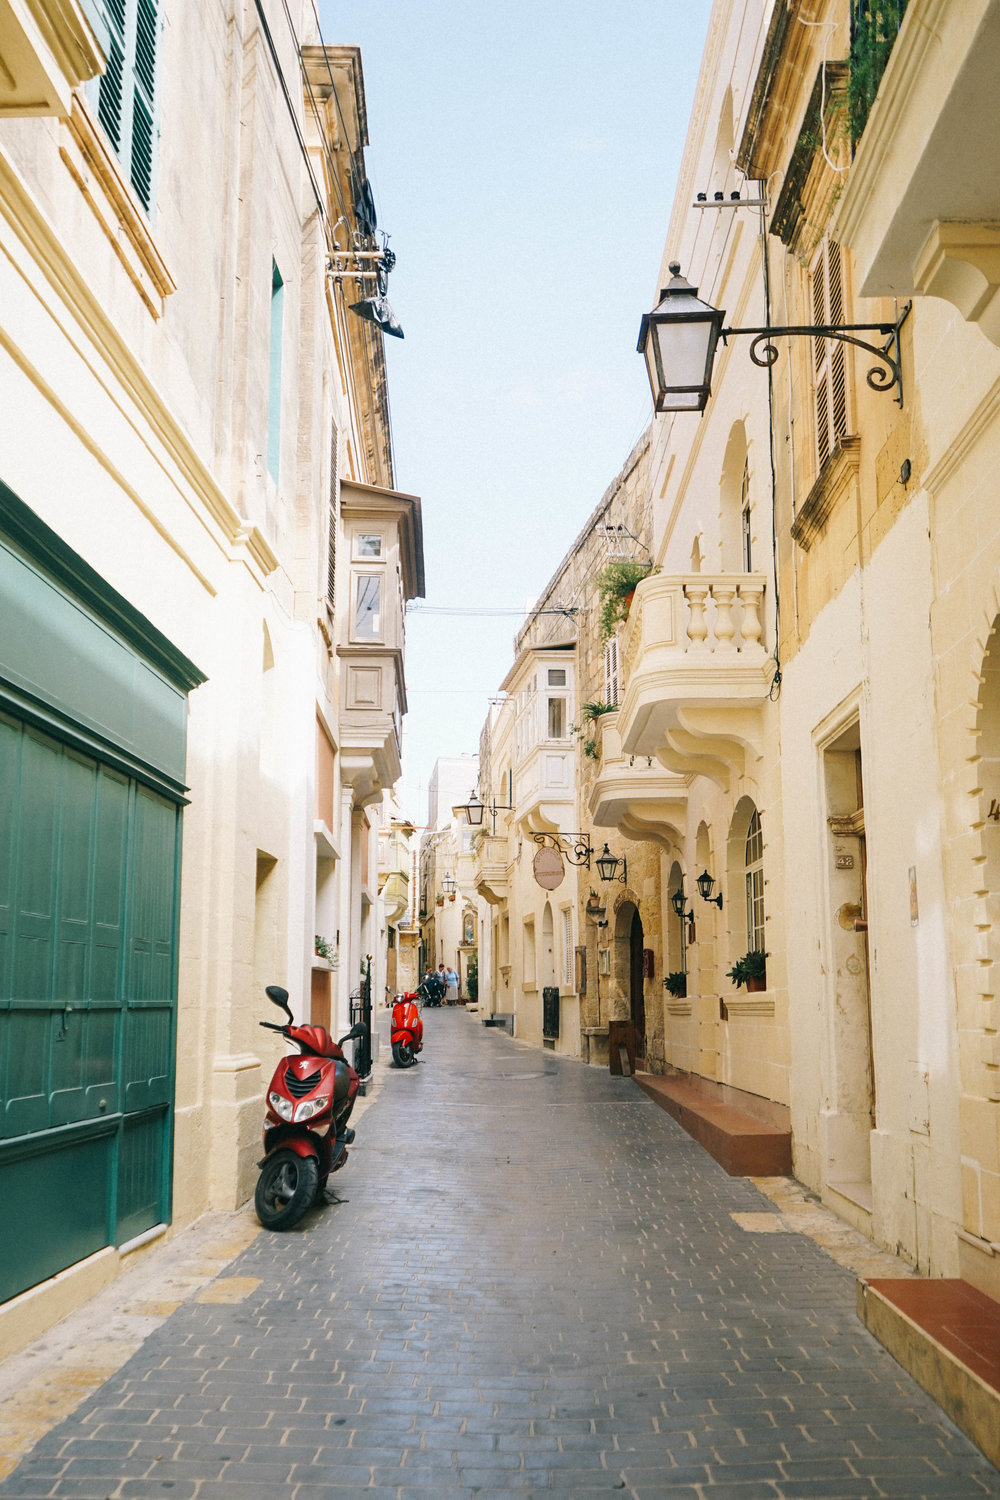 10 Photos to Inspire You to Visit Malta